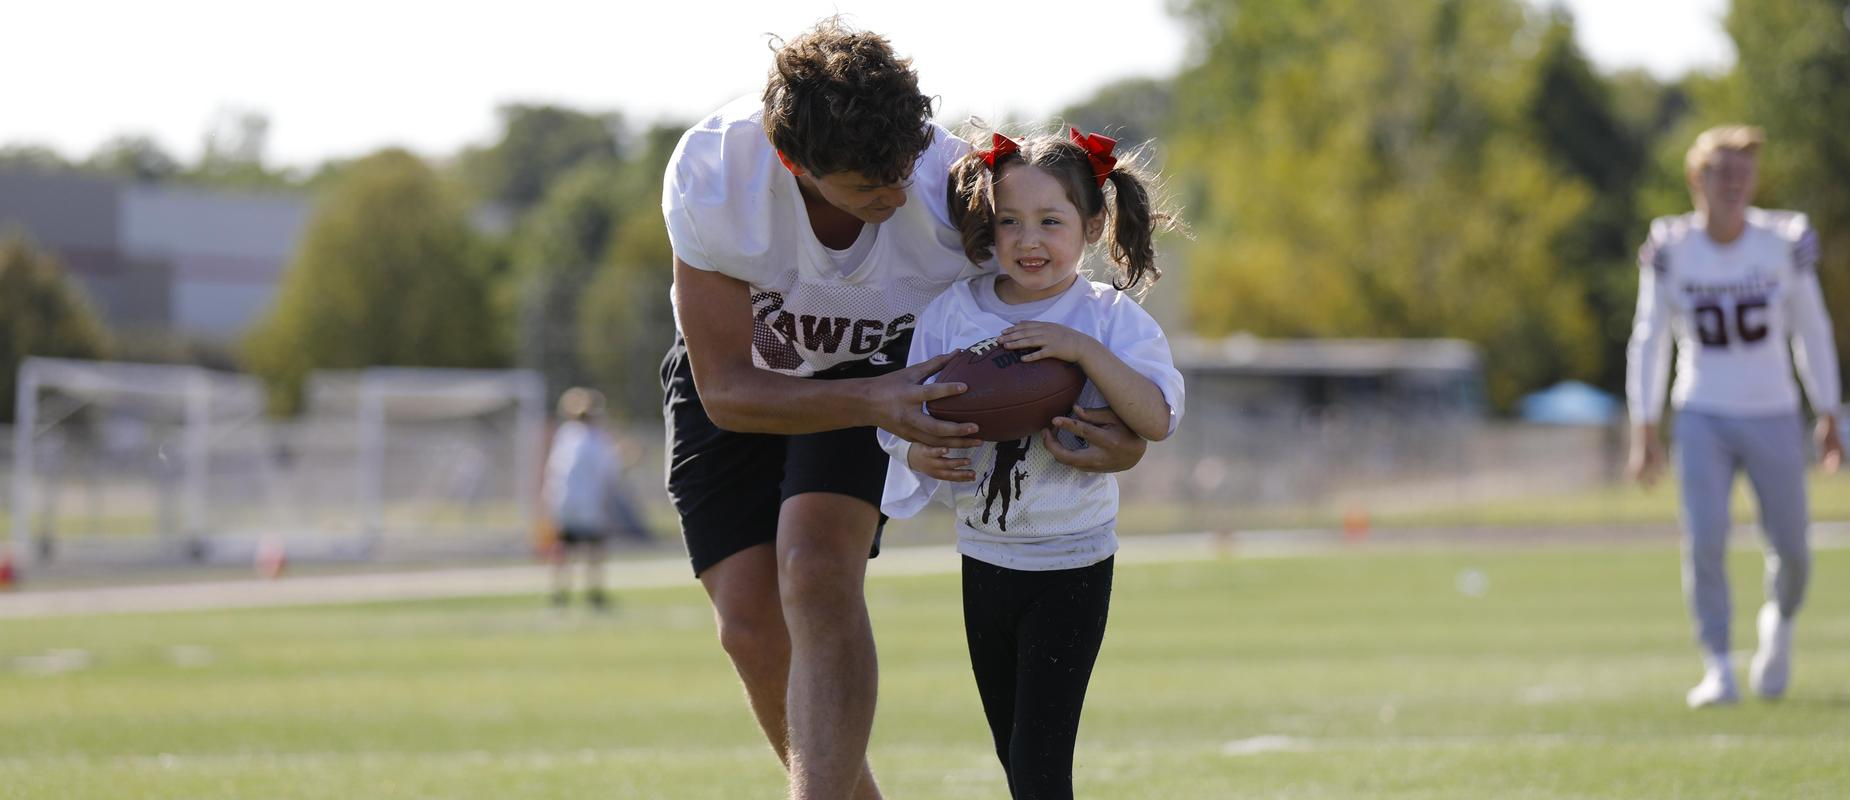 football player helps young girl cross into the endzone with football